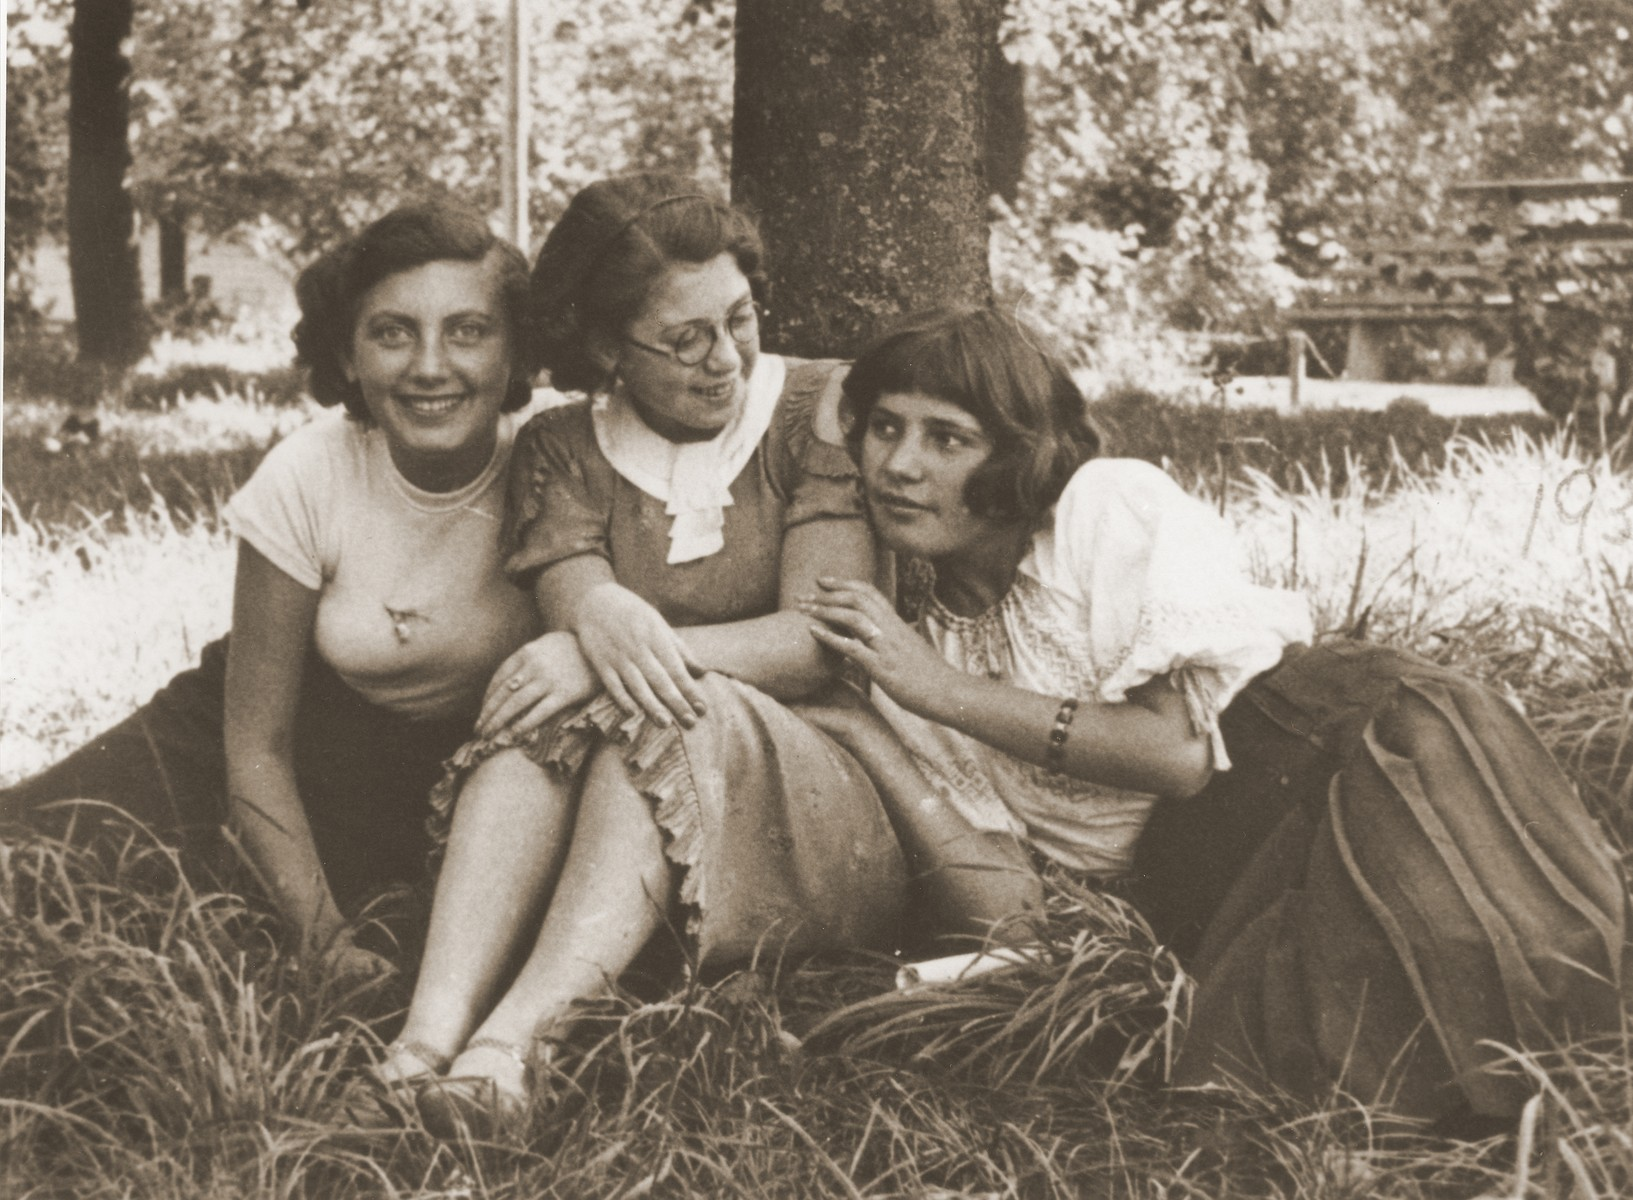 Three Jewish girlfriends in a park in Chelm.    Pictured from left to right are: Genia Karpenkopf, Felicja Berland, and Hanka Aljos.